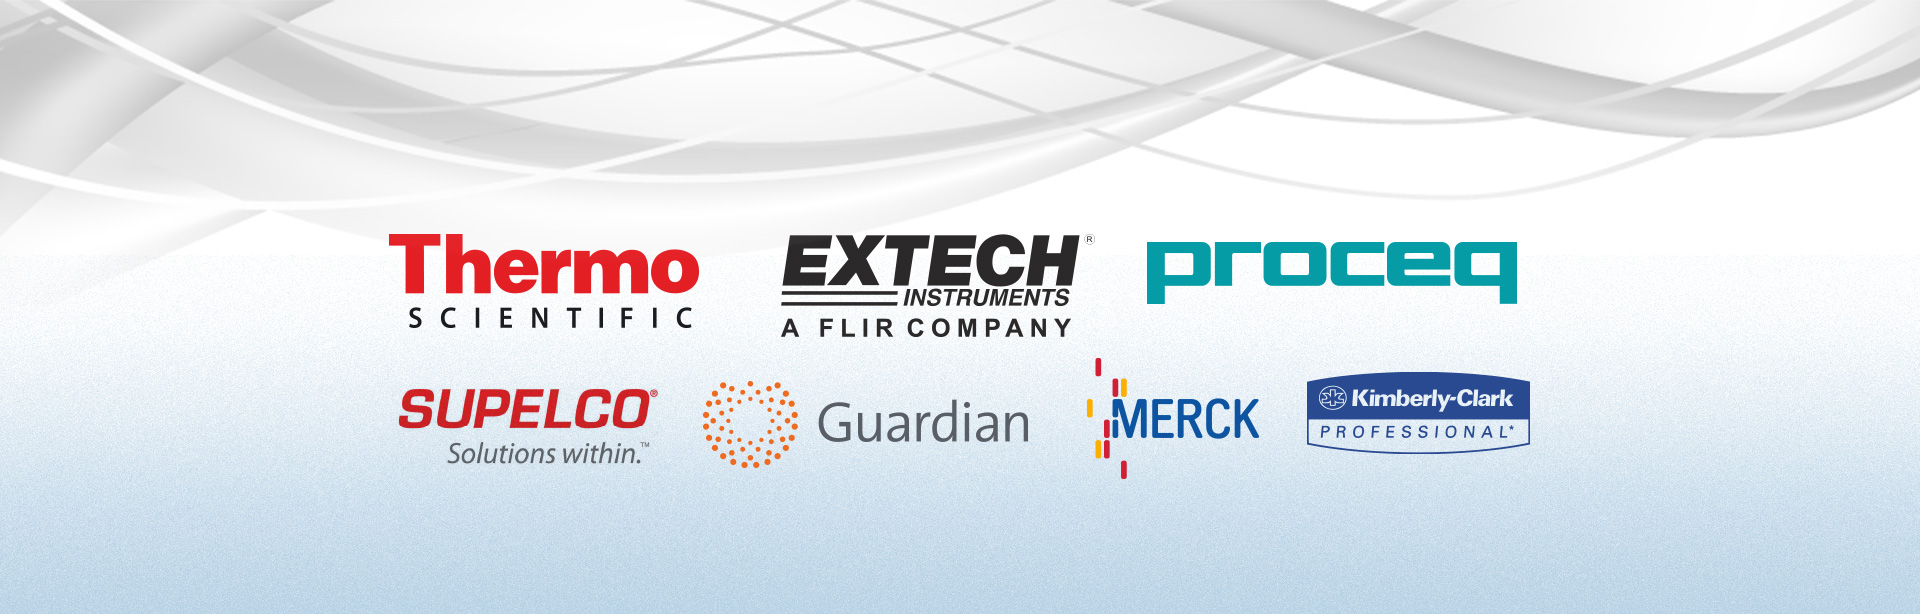 Major brands like Thermo scientific, Extech, Proceq, Supelco, guardian, Merck, Kimberly-Clark are available on request.